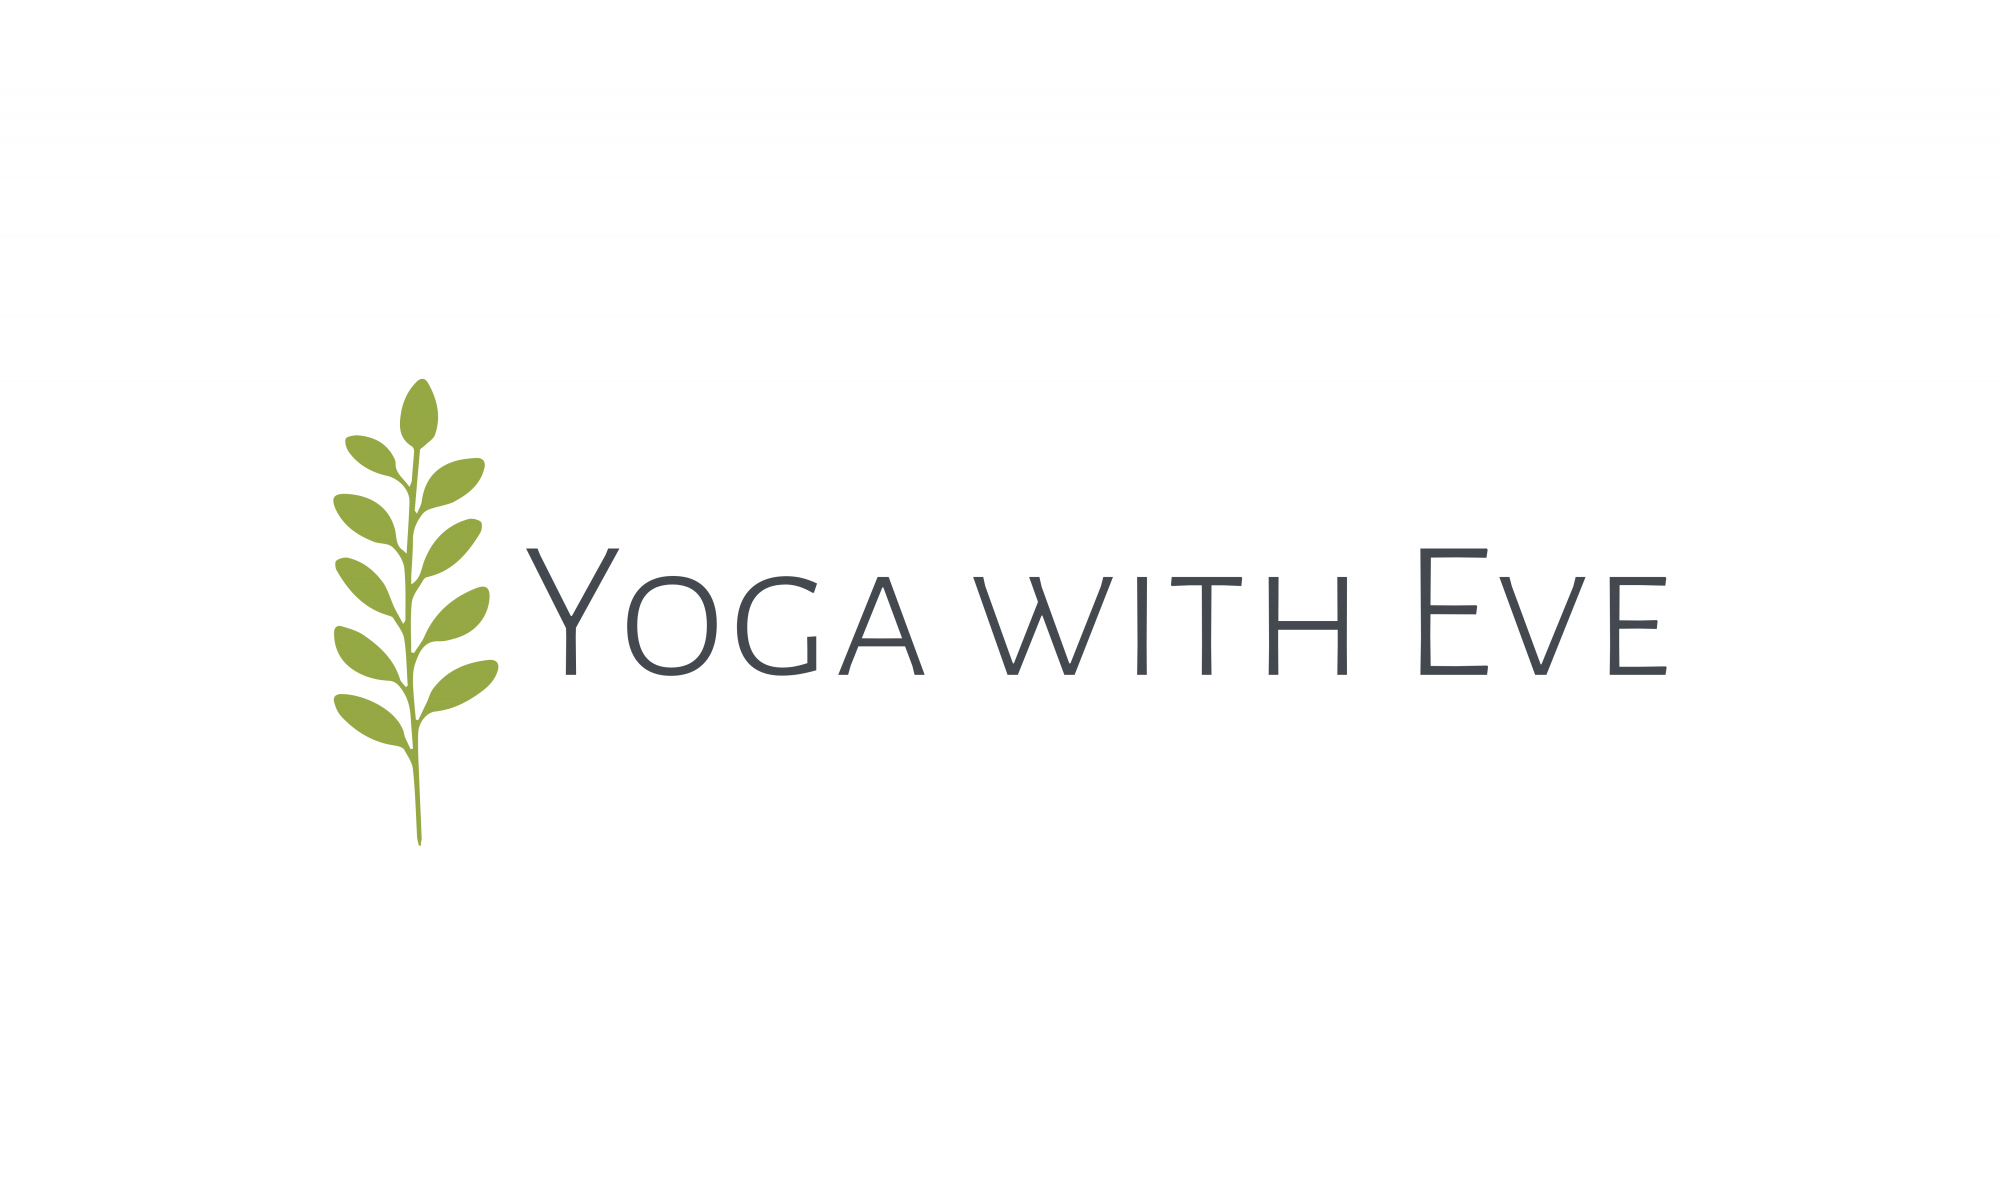 Yoga with Eve